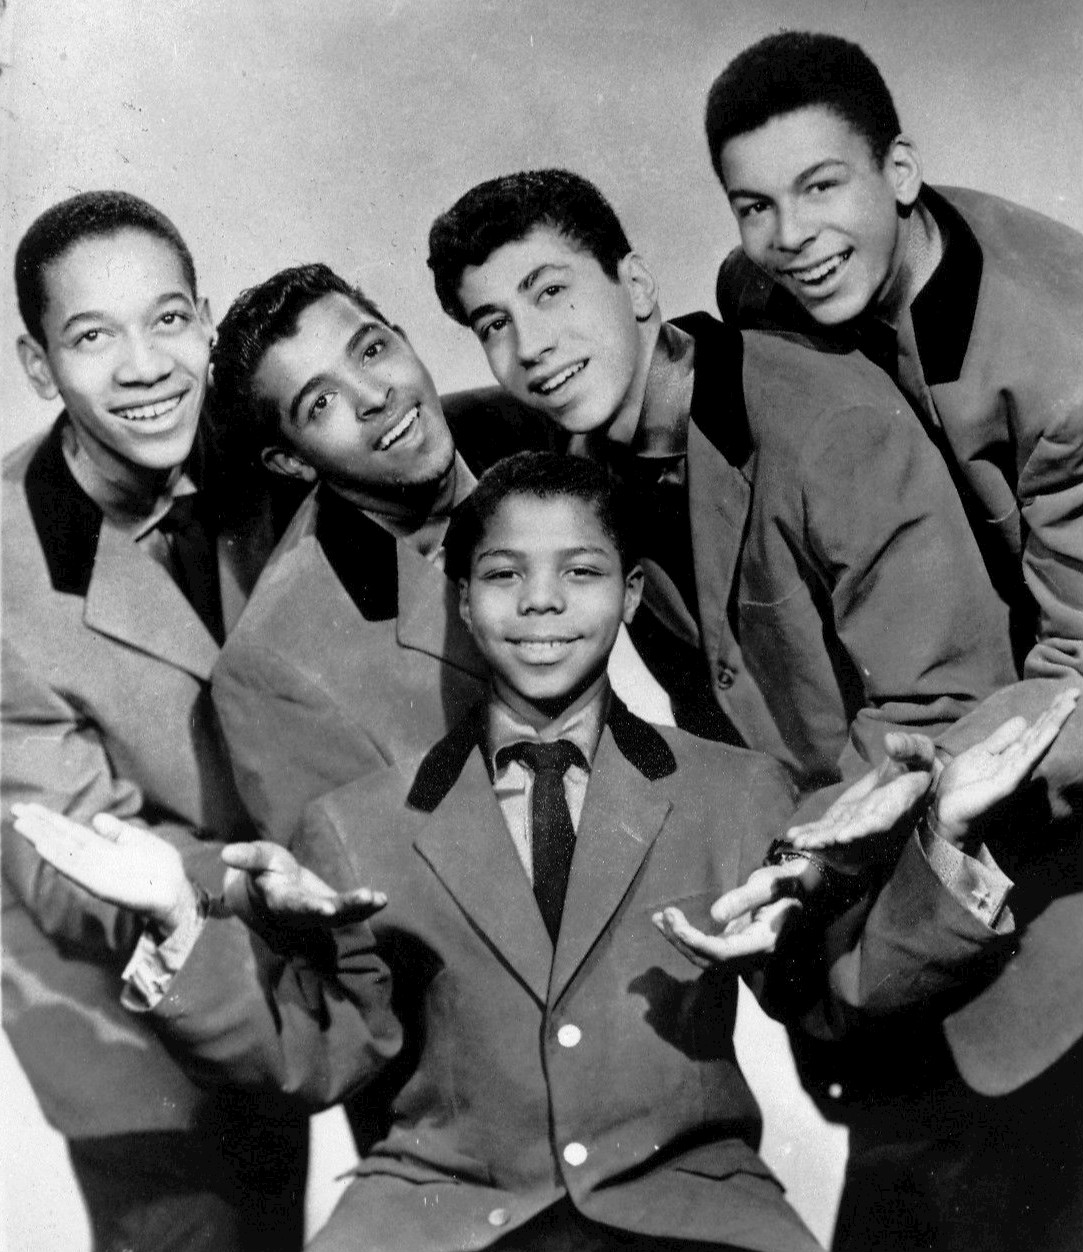 4 Seasons Group doo-wop - wikipedia